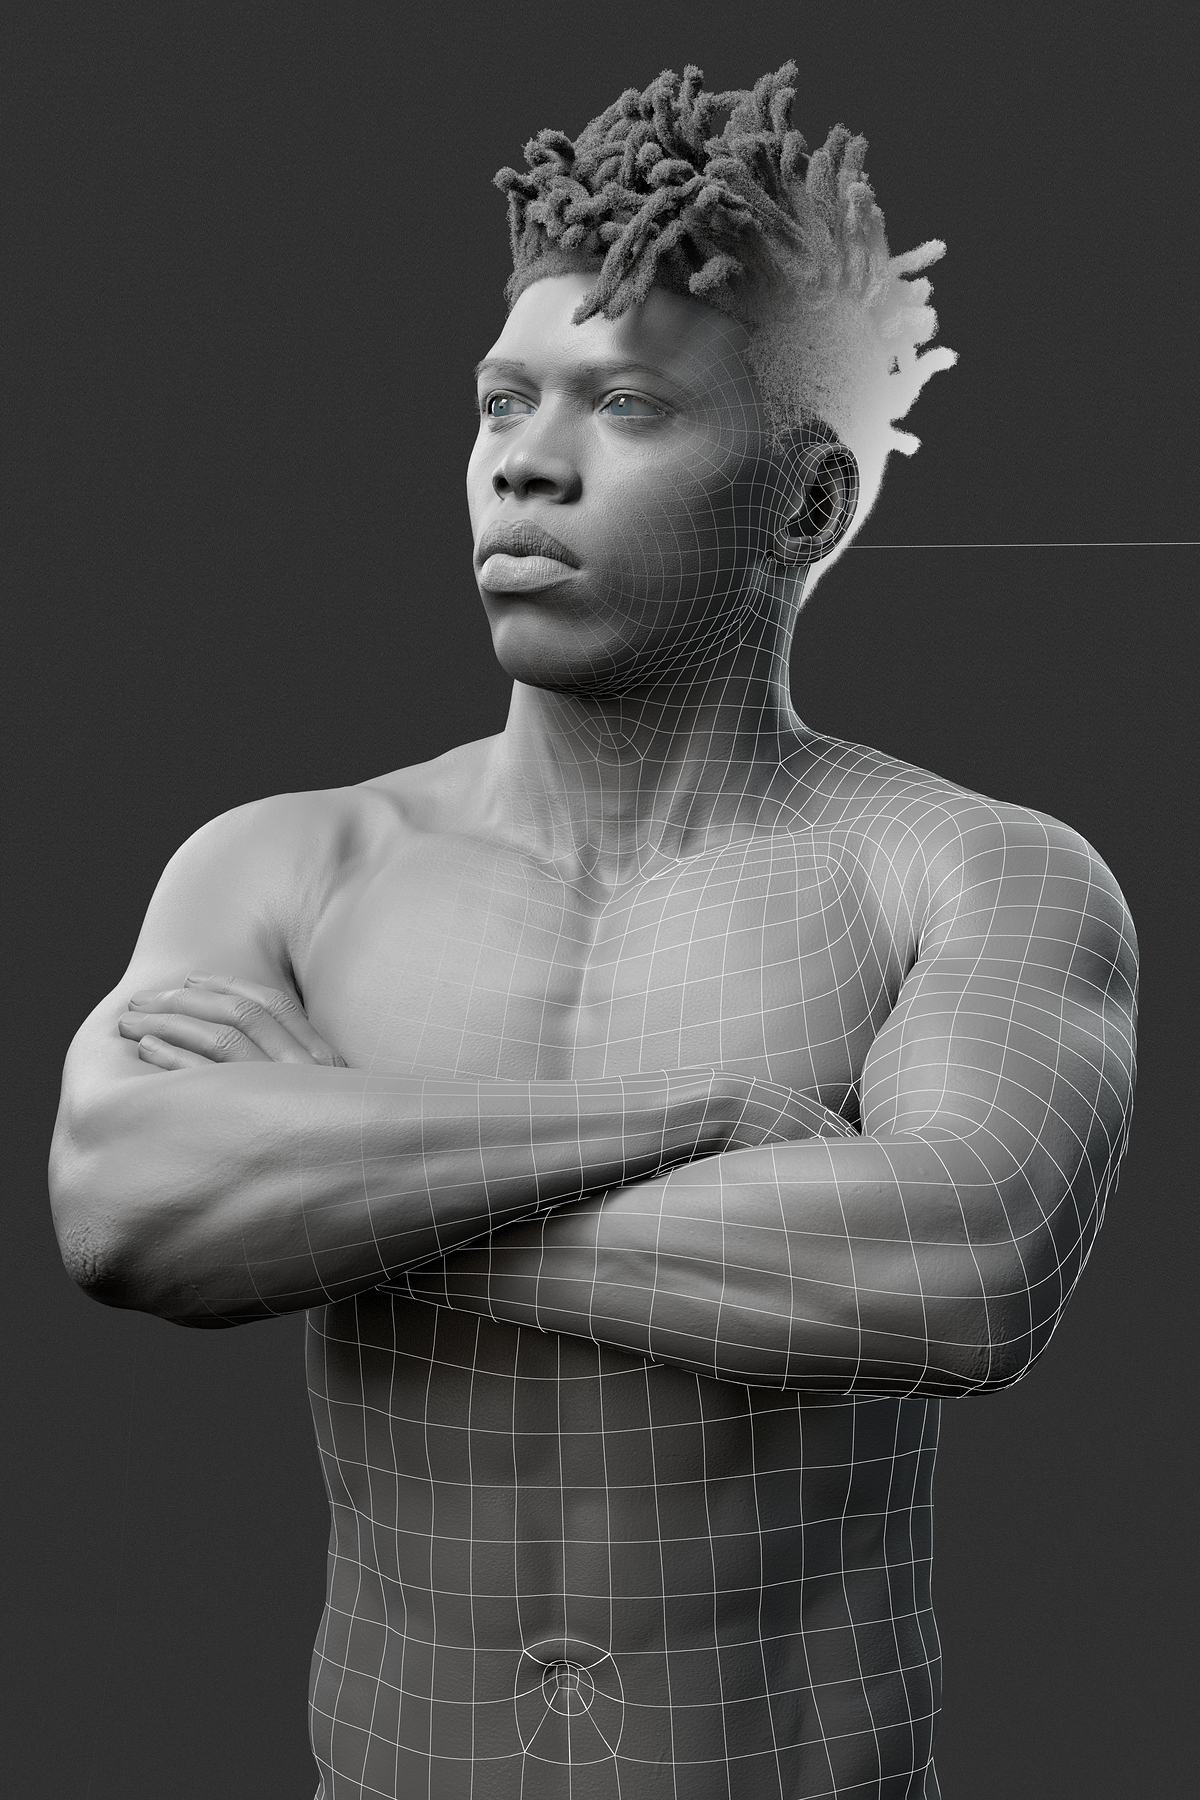 grayscale(wire)